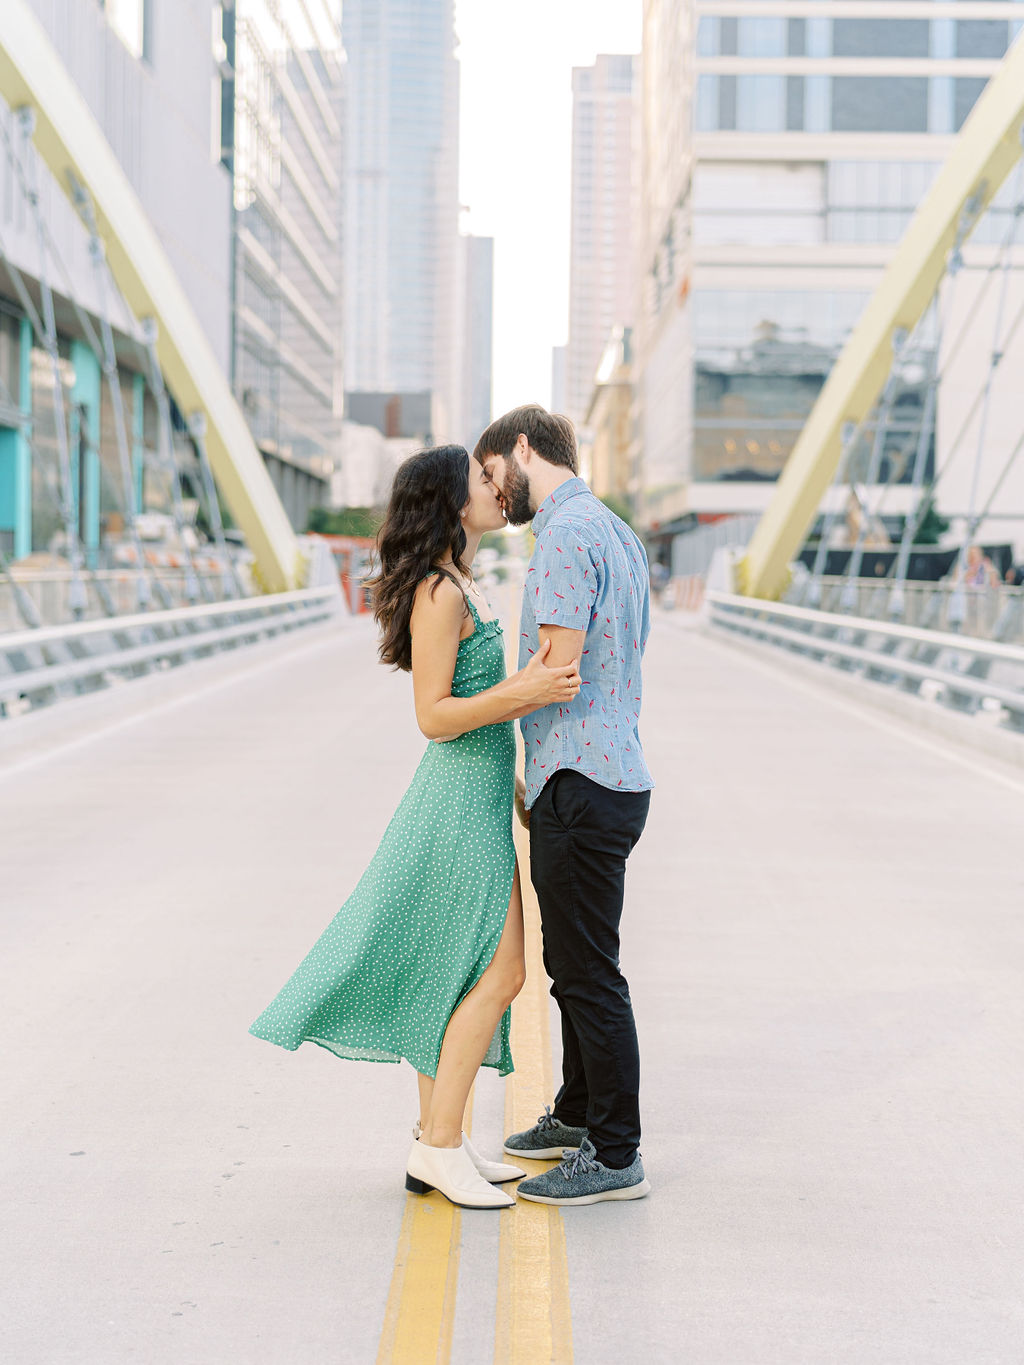 Austin-Intimate-Wedding-Elopement-Photograper-Film-Downtown-Engagement-Session-Home-15.jpg